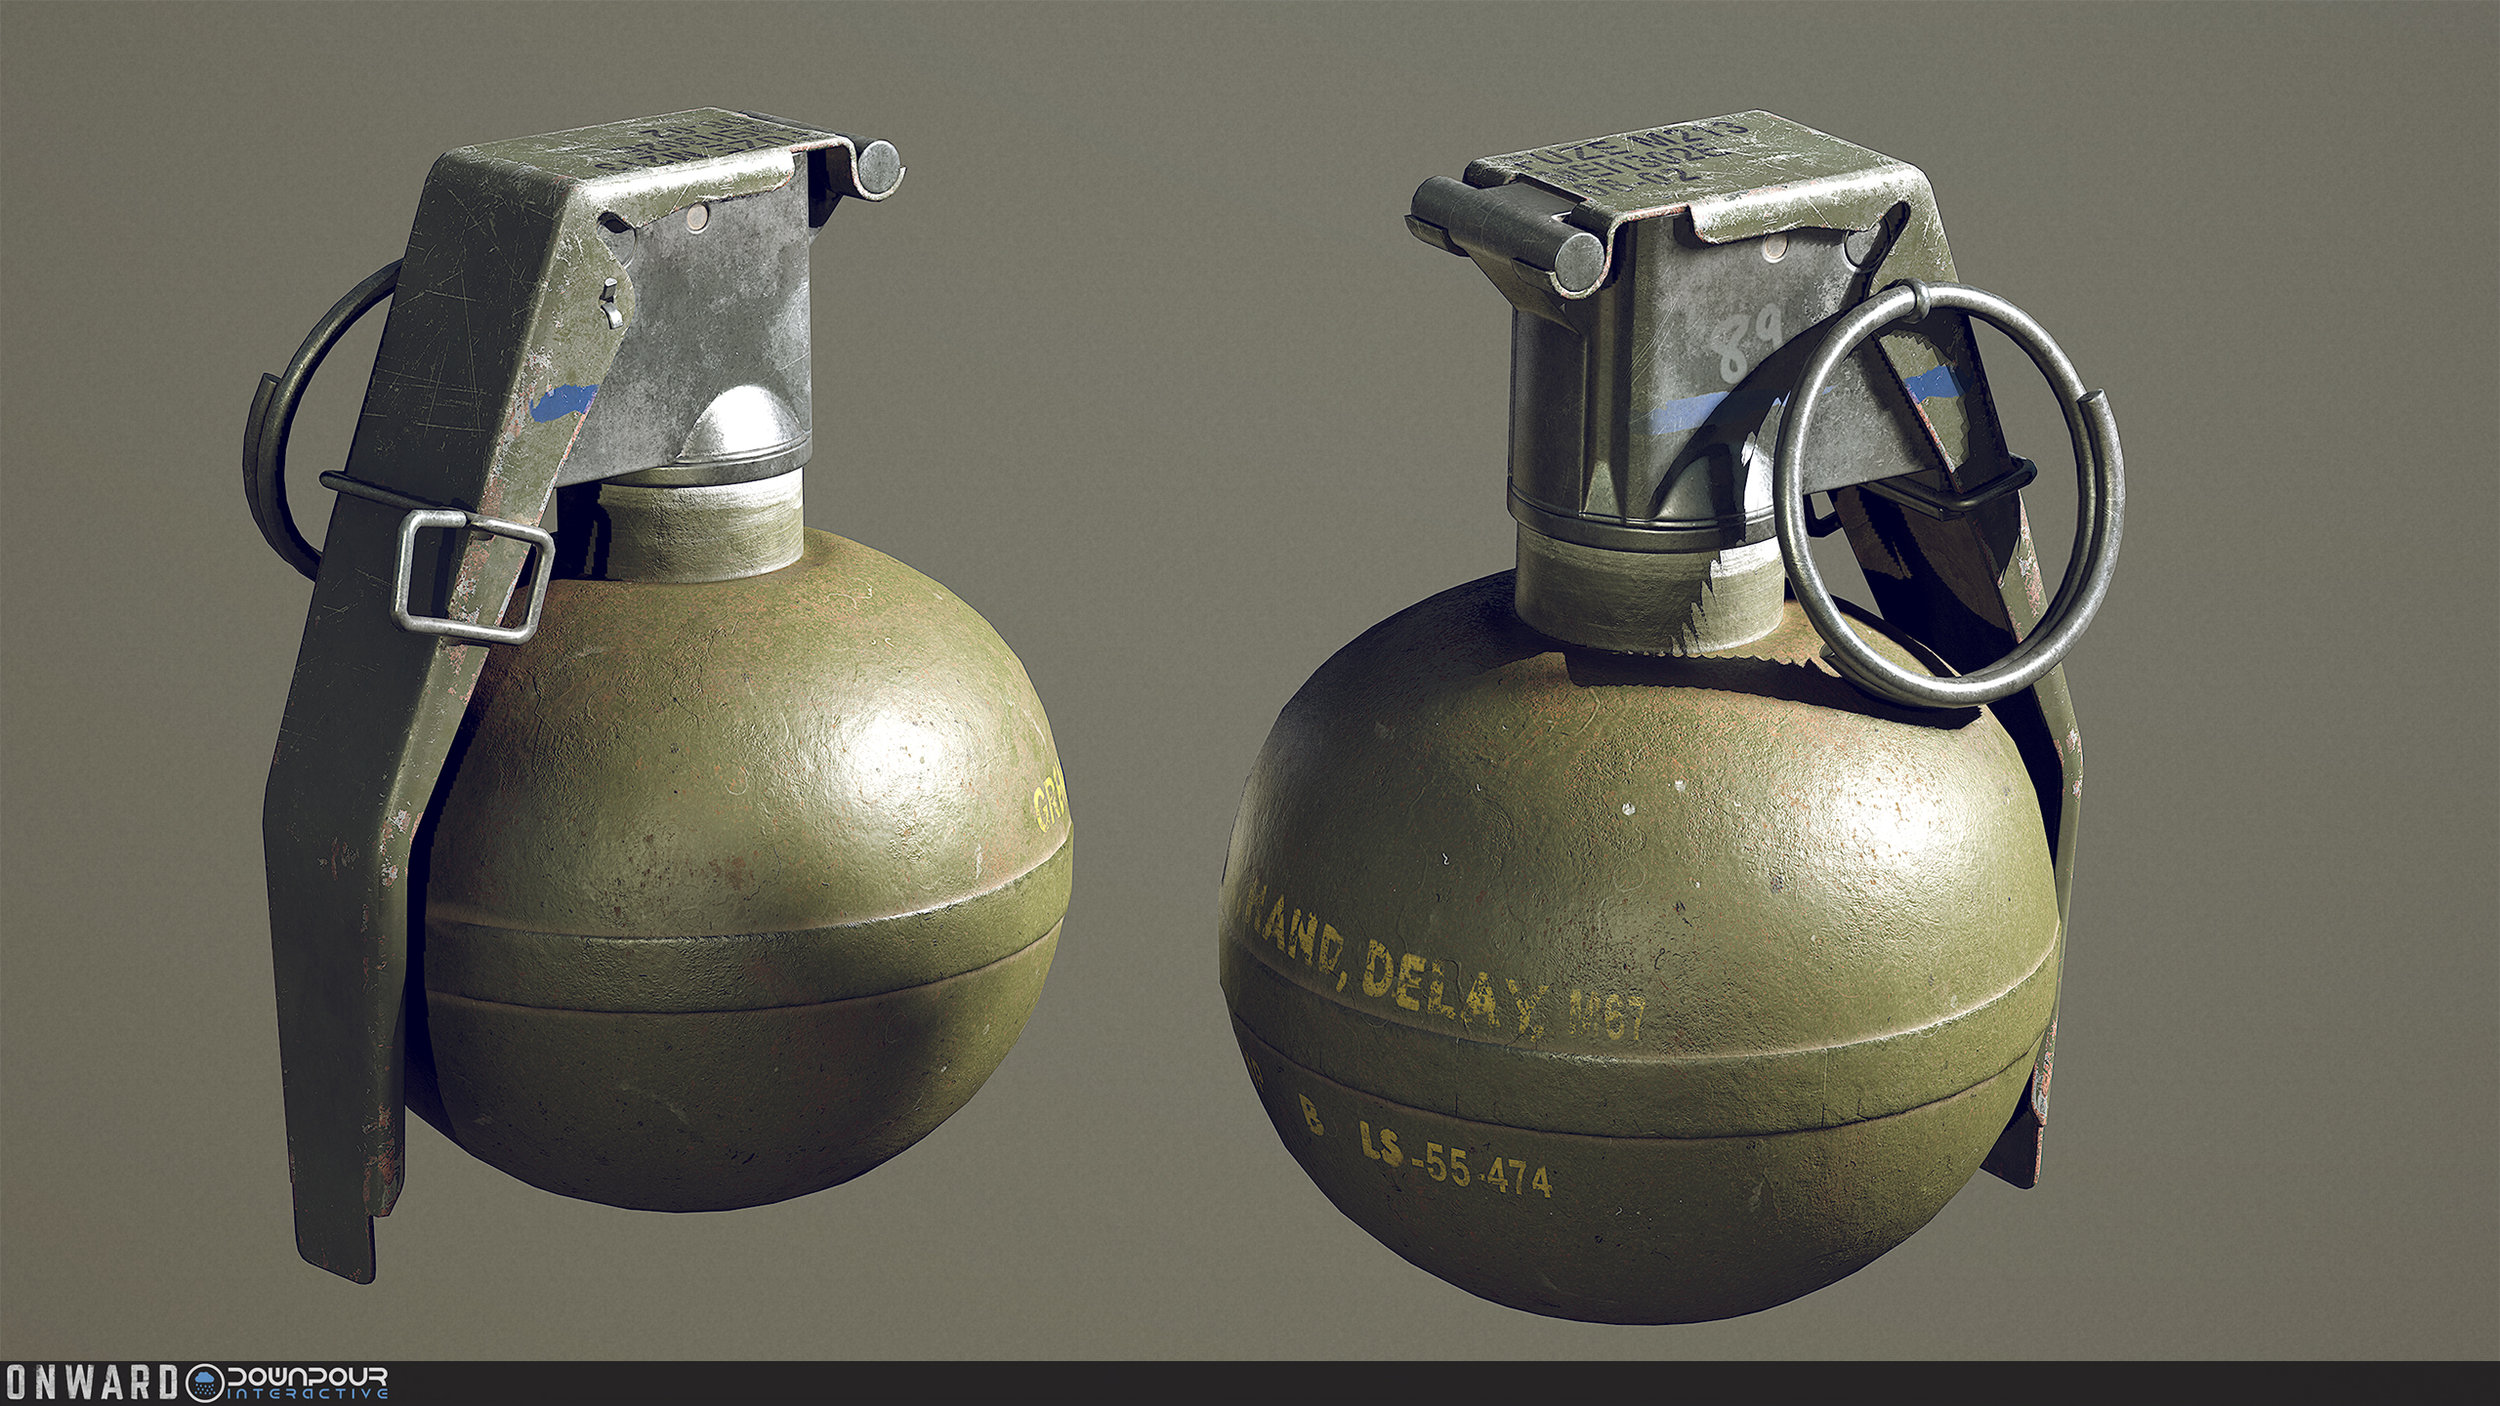 New replacement model for the frag grenade.